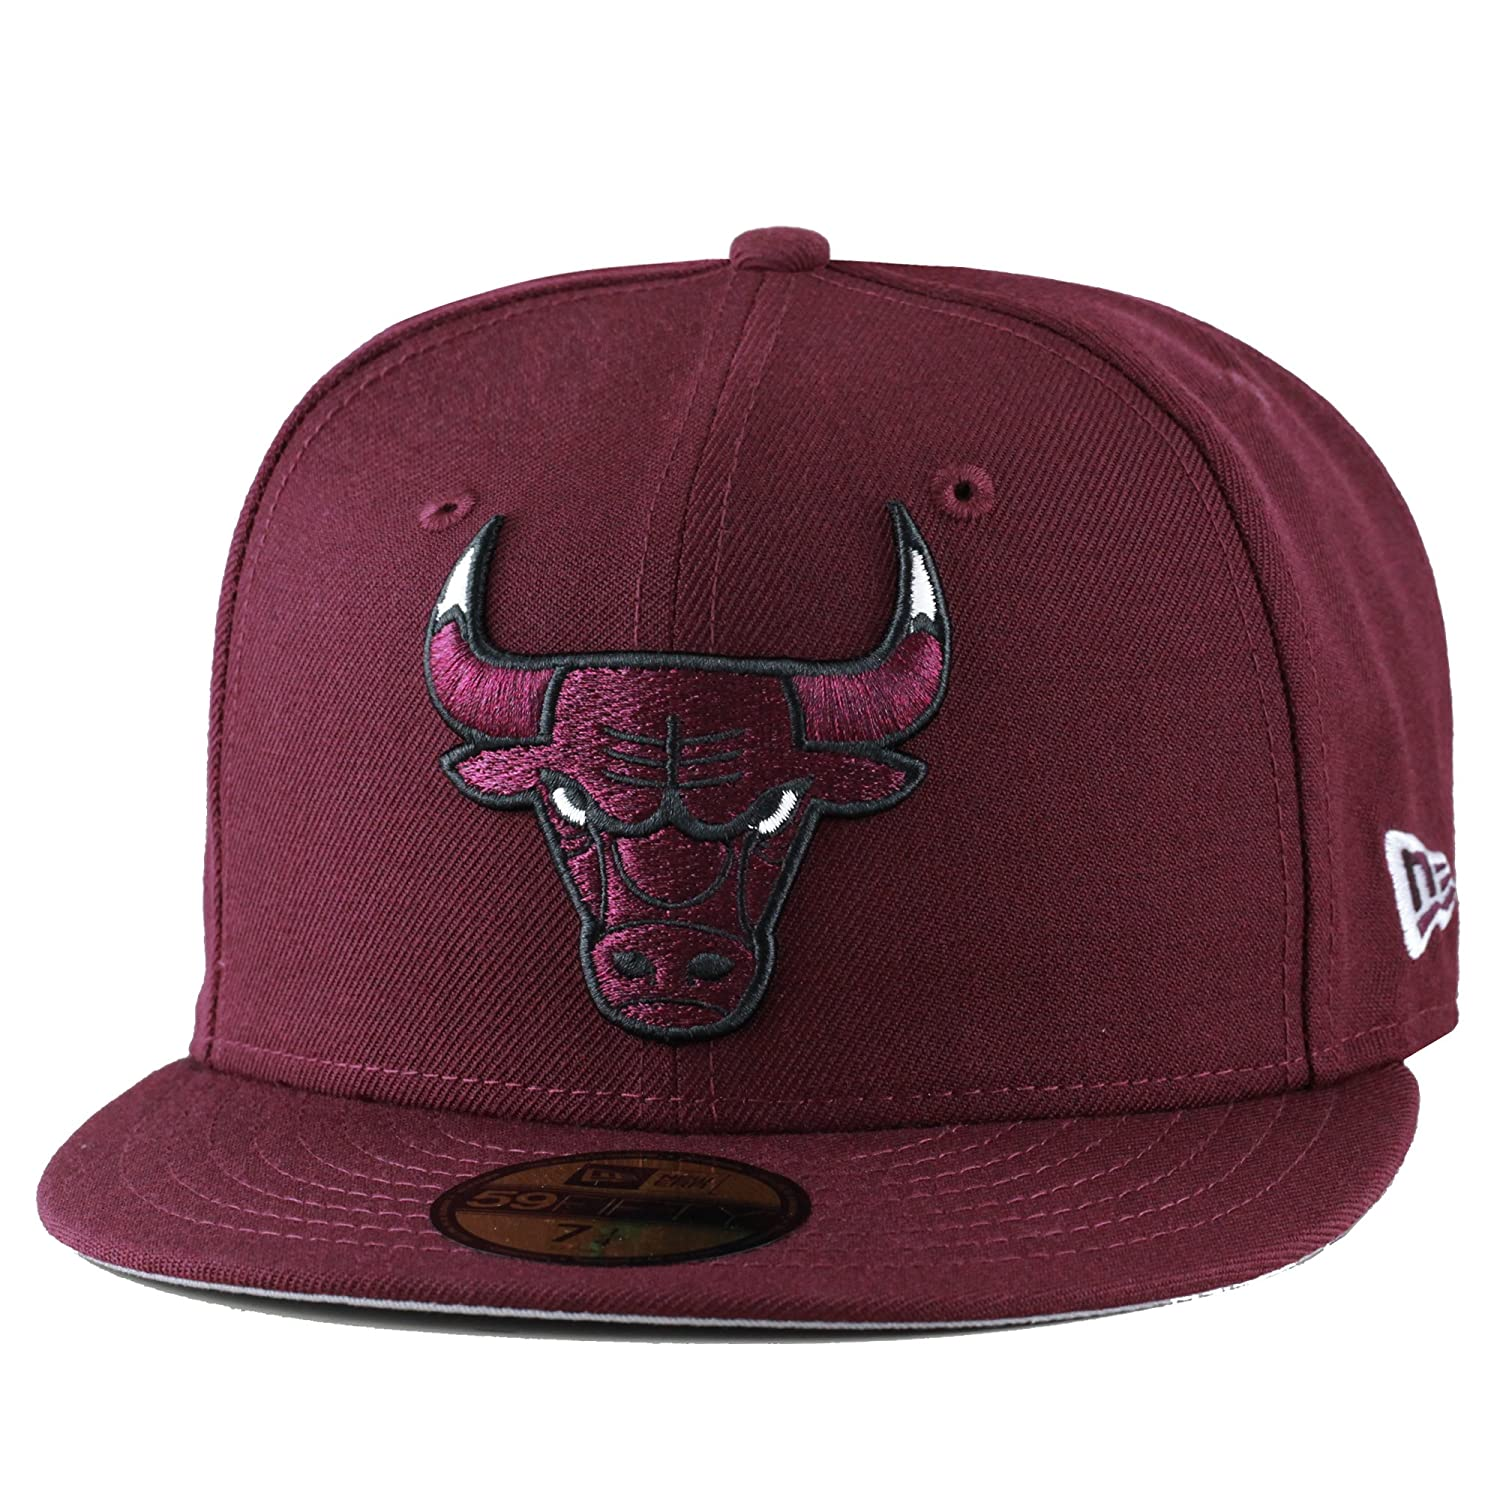 11806cb8b6c Amazon.com  New Era Chicago Bulls Fitted Hat Cap Maroon White Eyes  Clothing